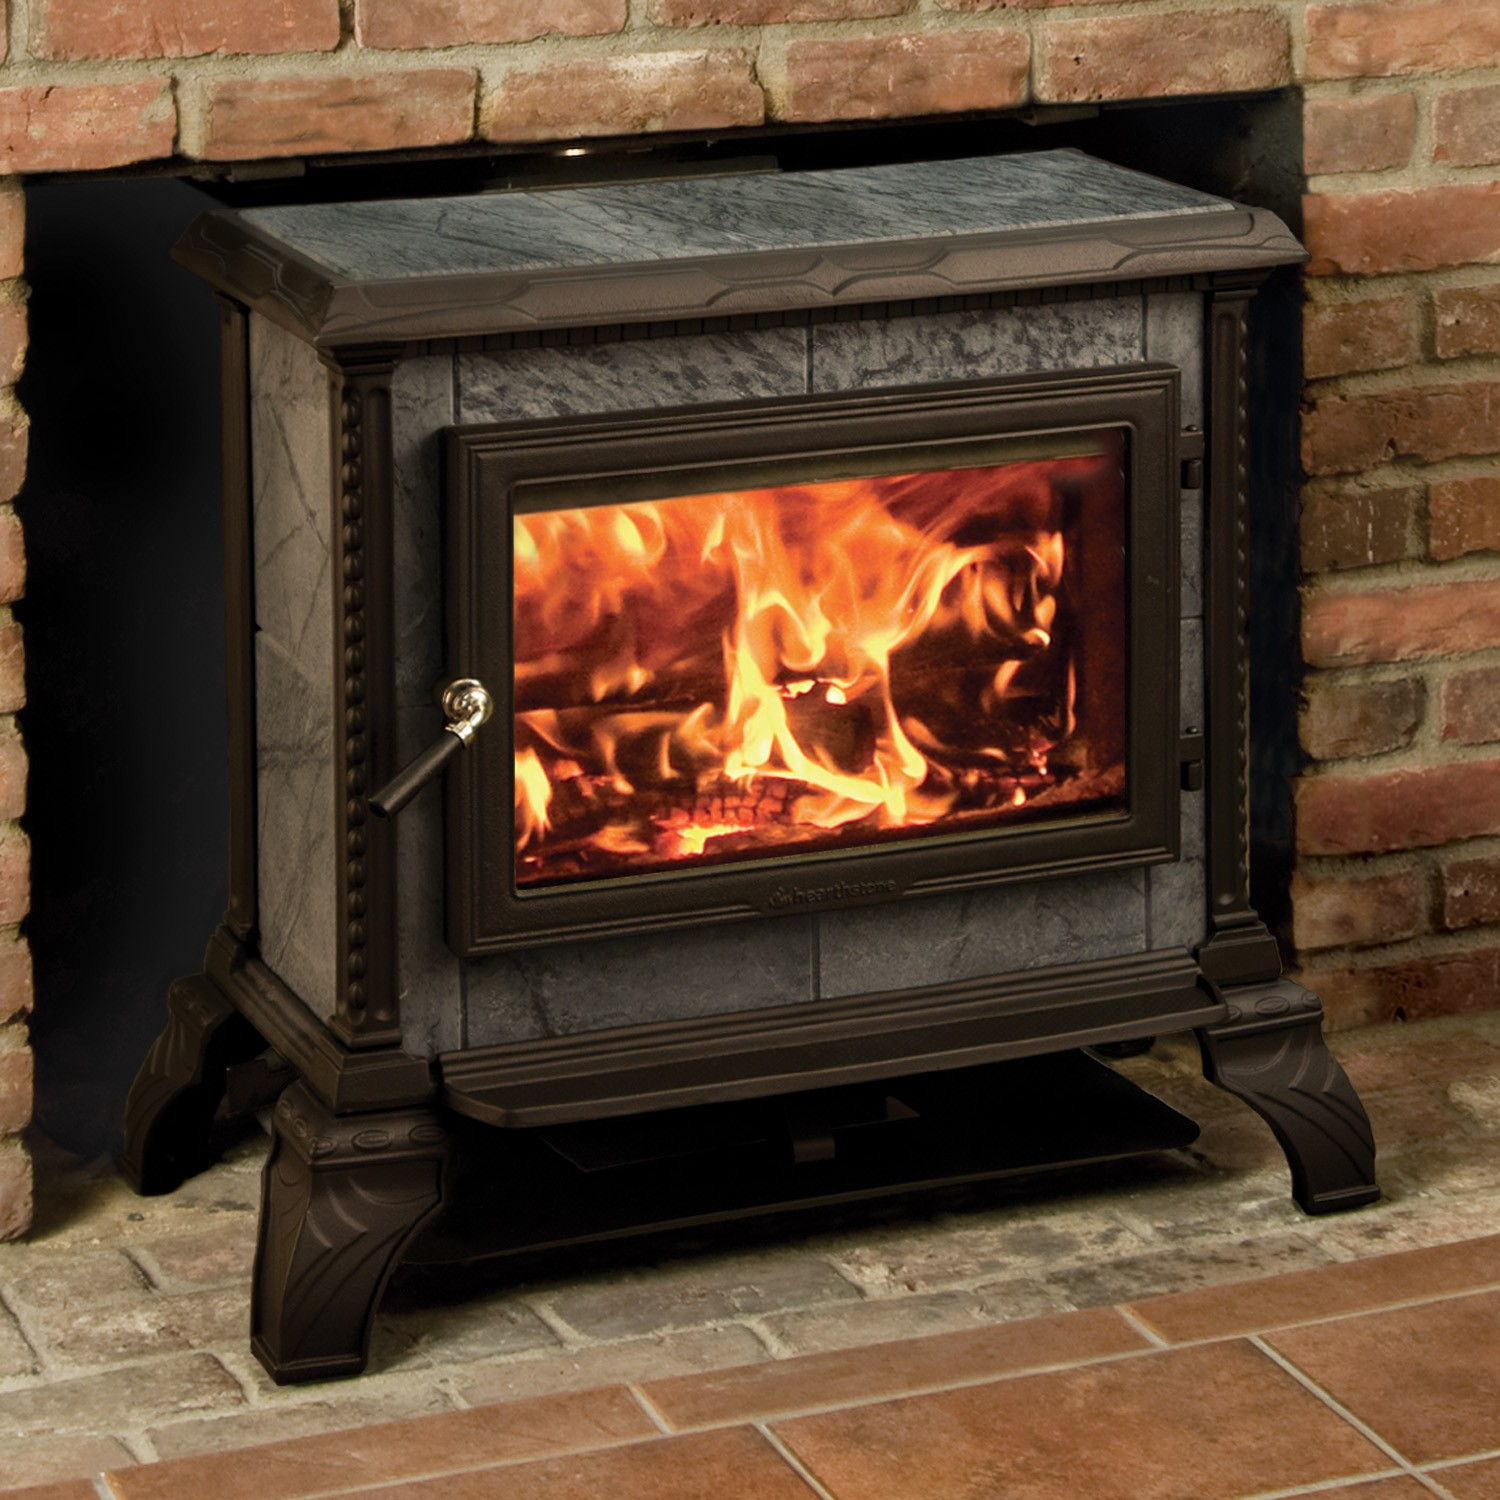 Hearthstone Homestead 8570 Soap Stone Wood Stove Cleveland